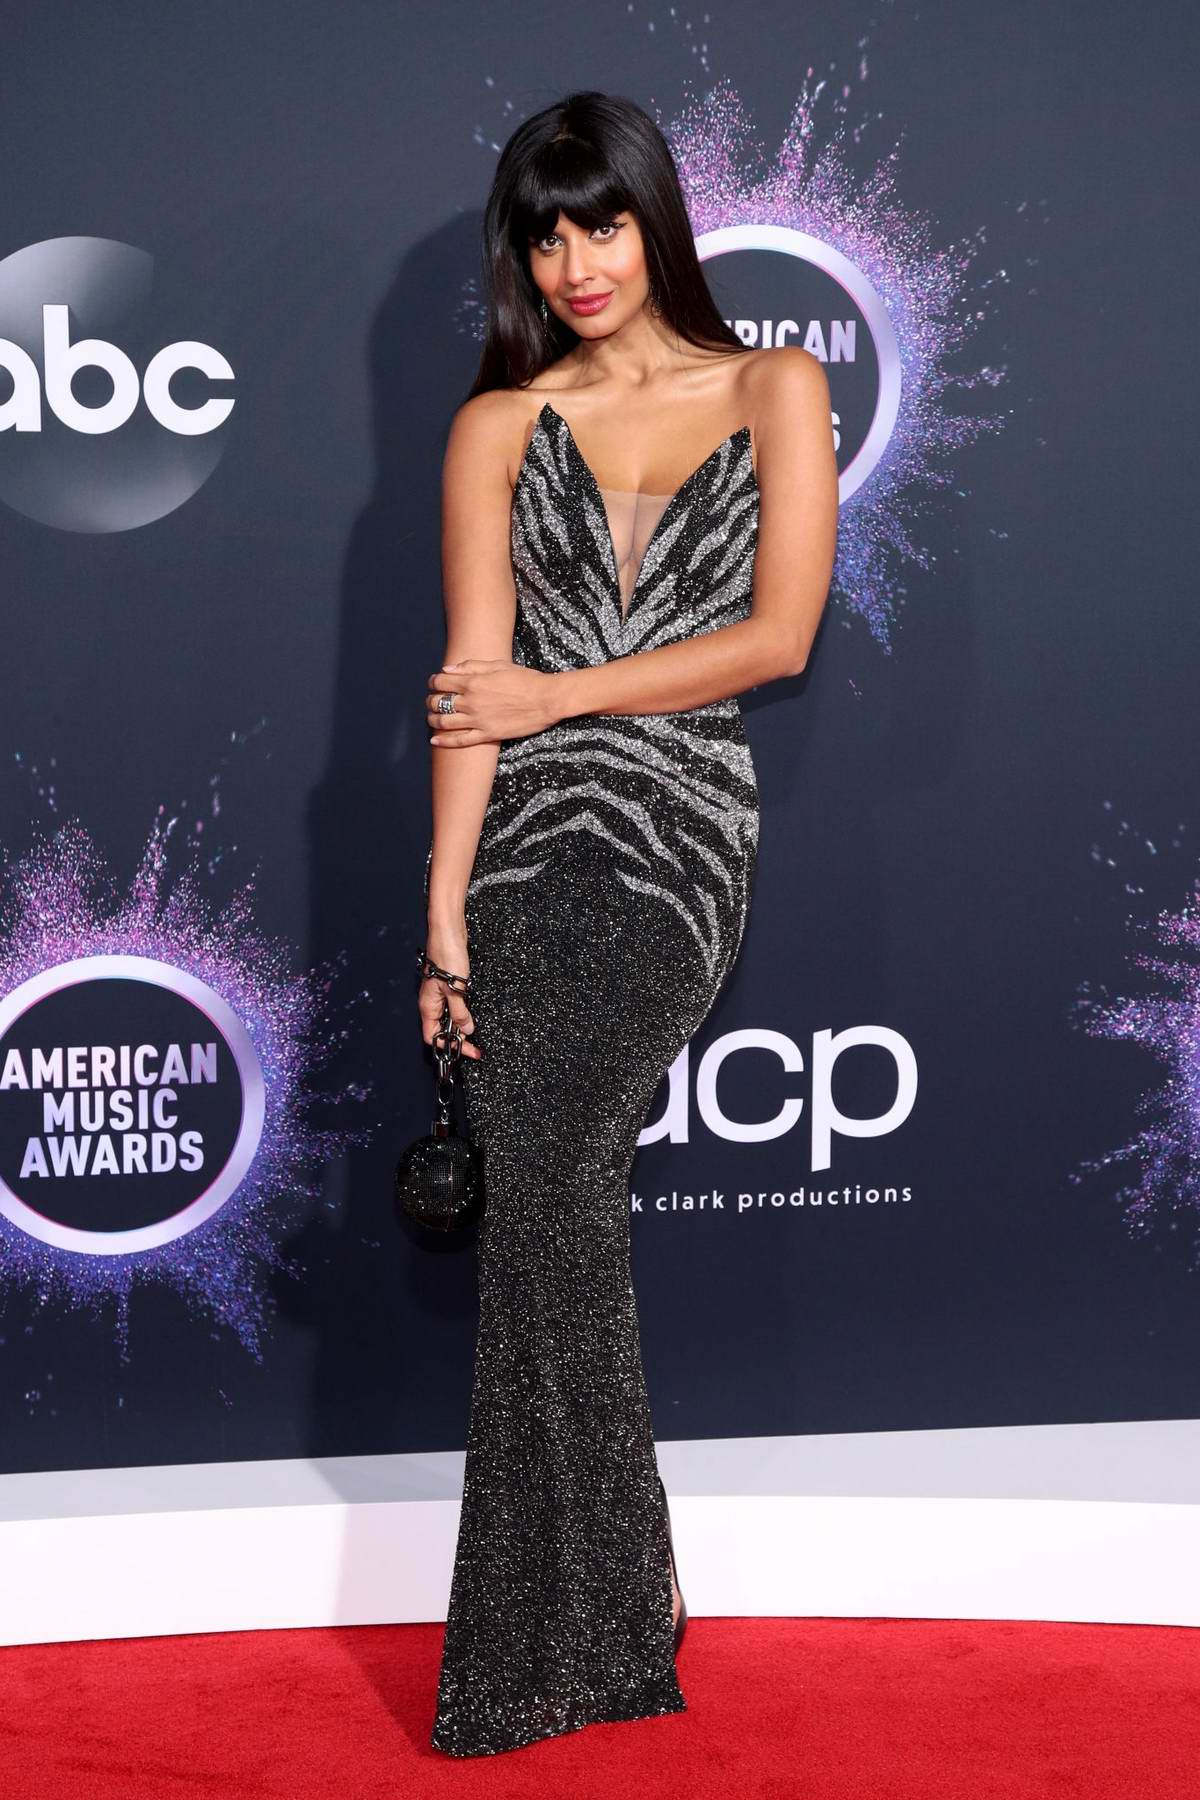 Jameela Jamil attends the 2019 American Music Awards at Microsoft Theater in Los Angeles